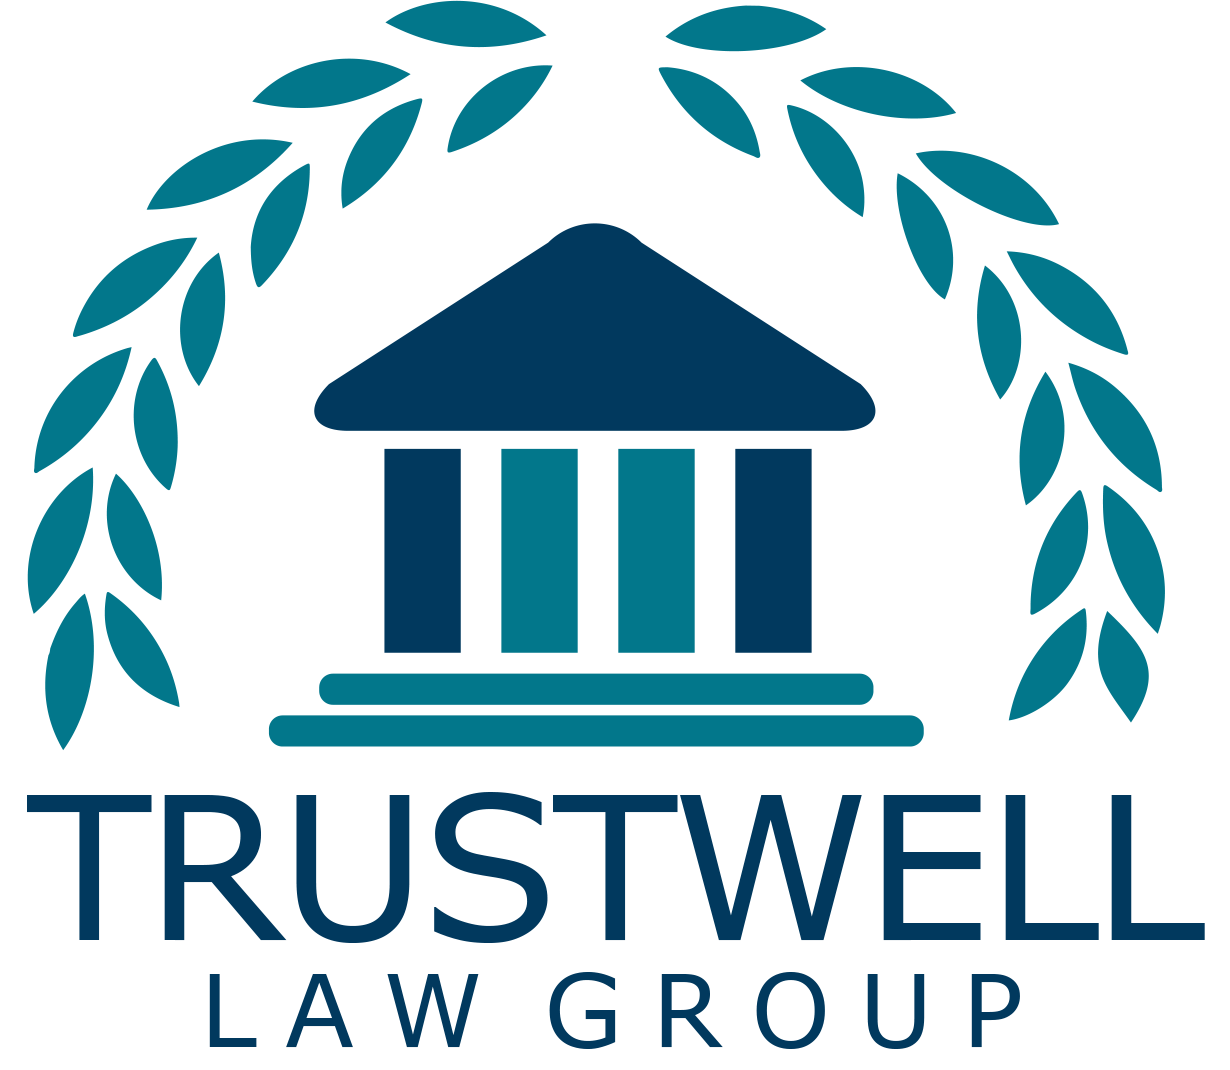 Trustwell Law Group LLP logo